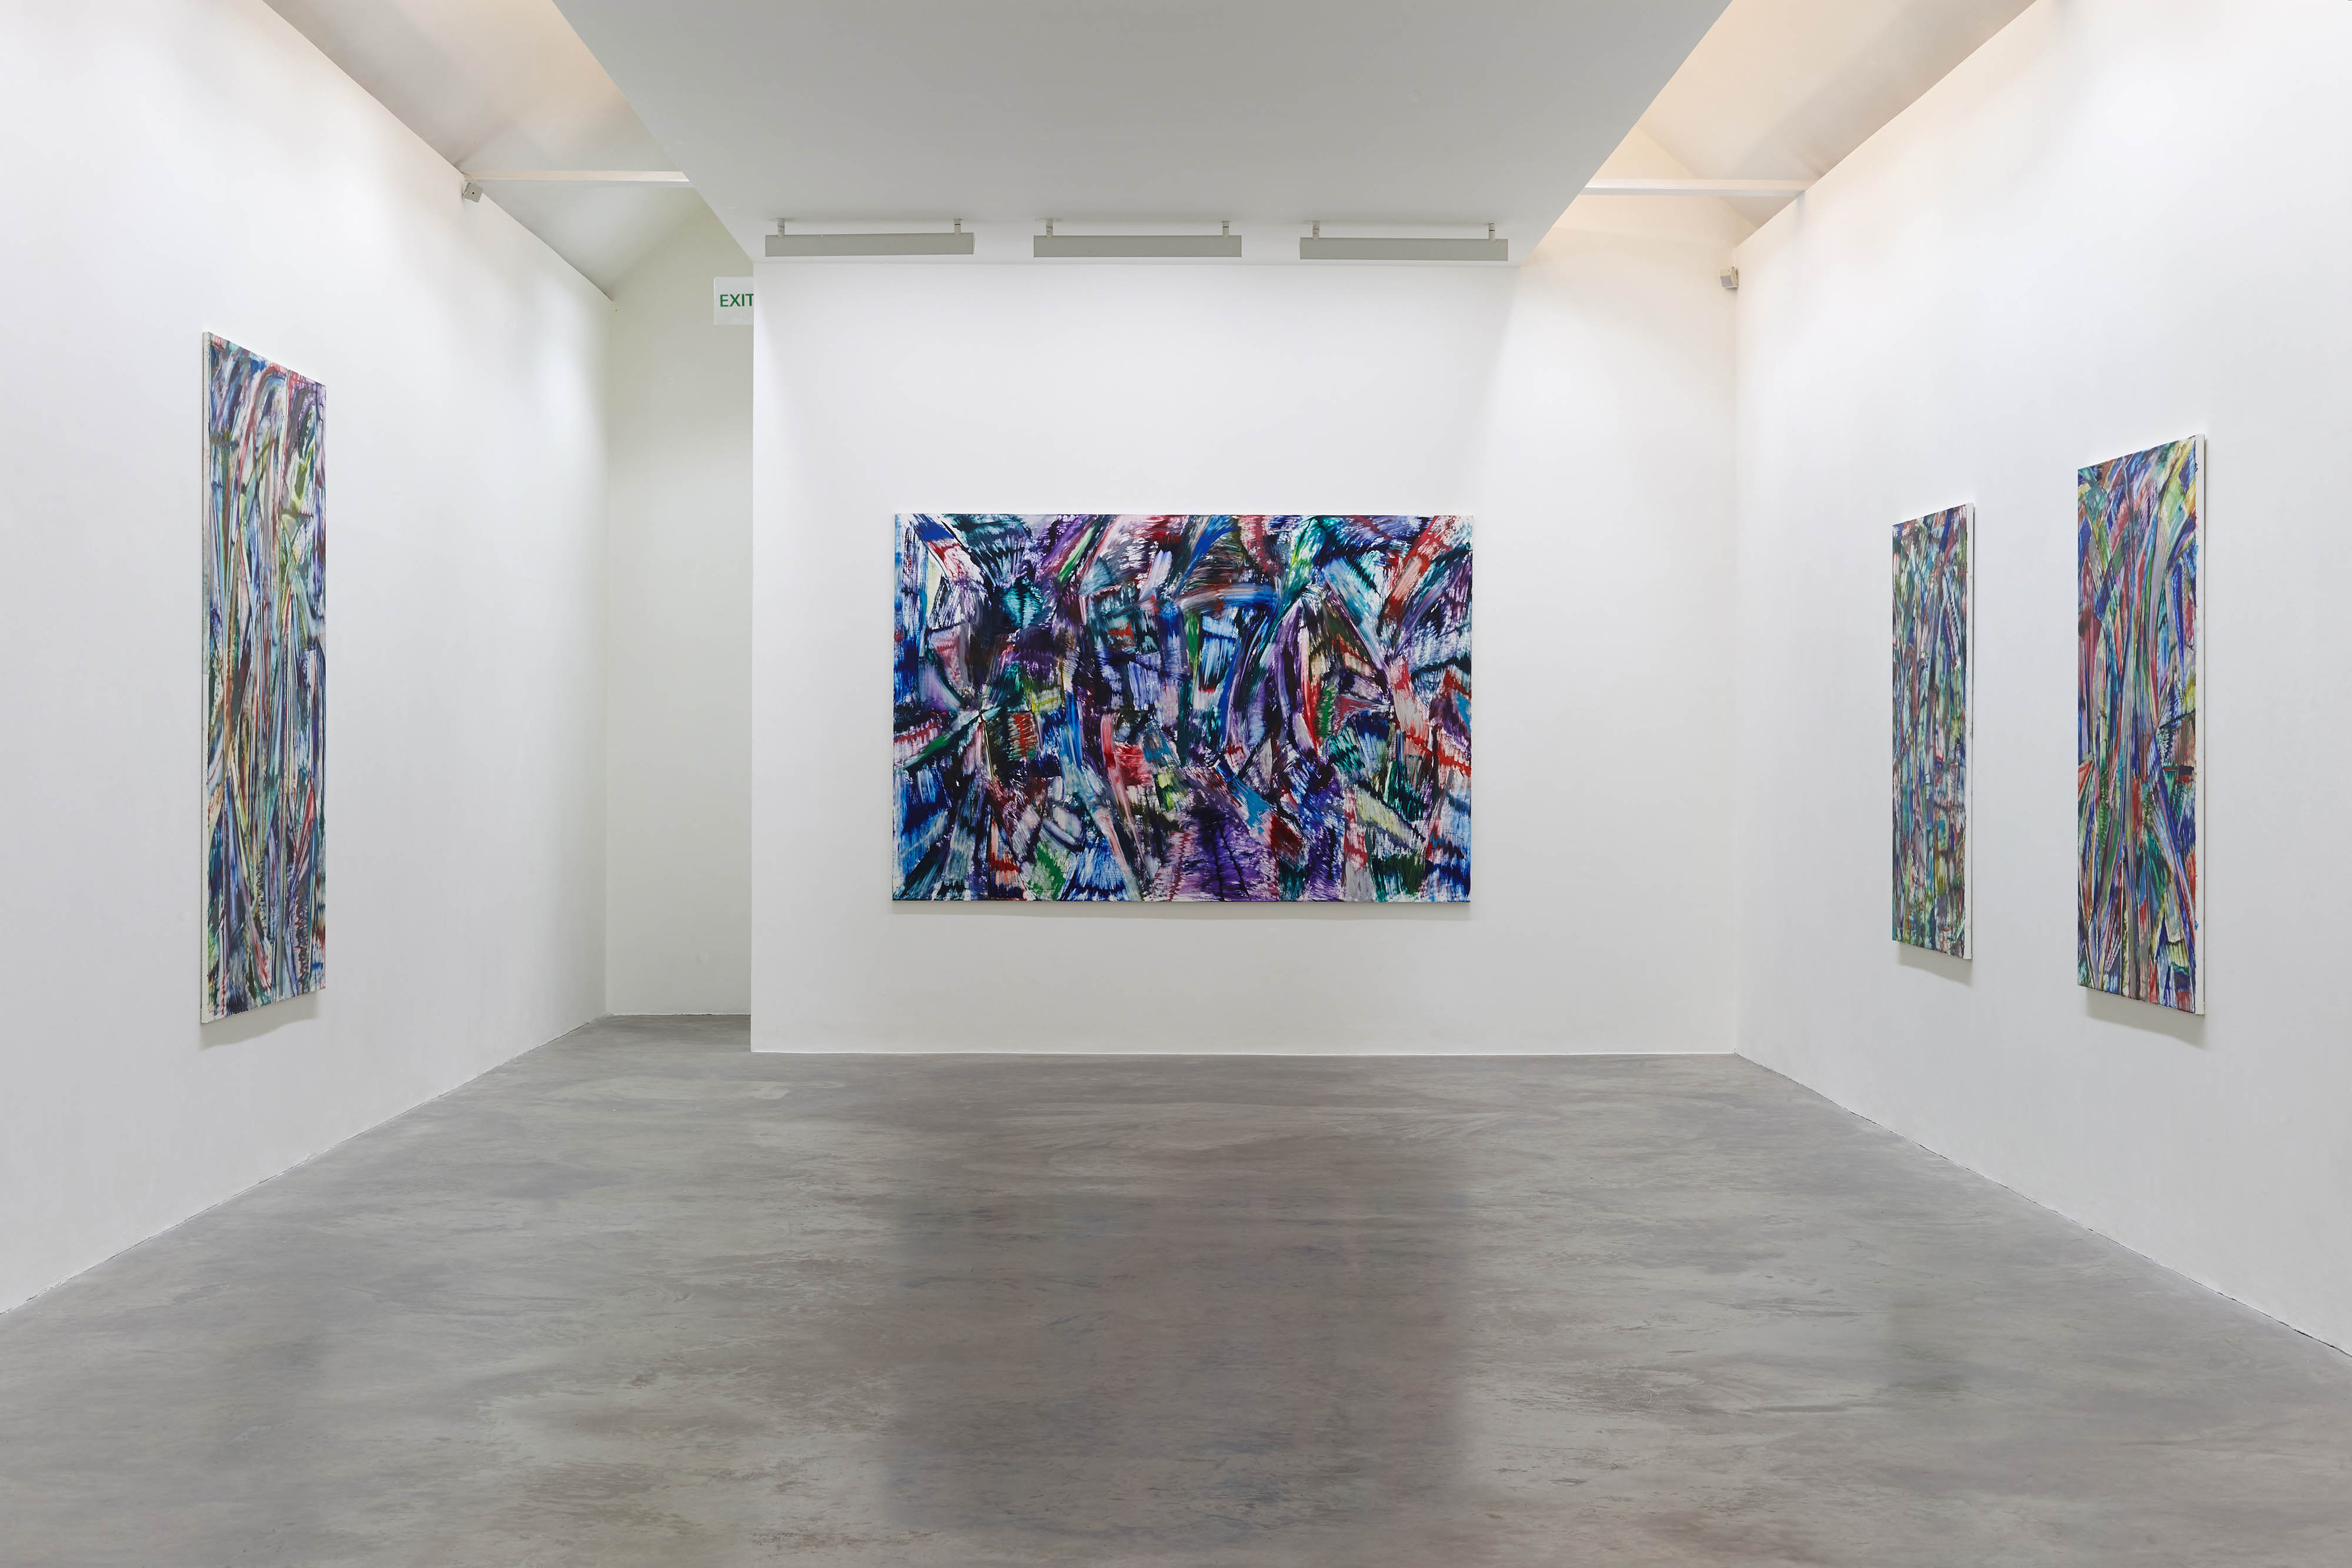 2 - Jan Pleitner at Kerlin Dublin